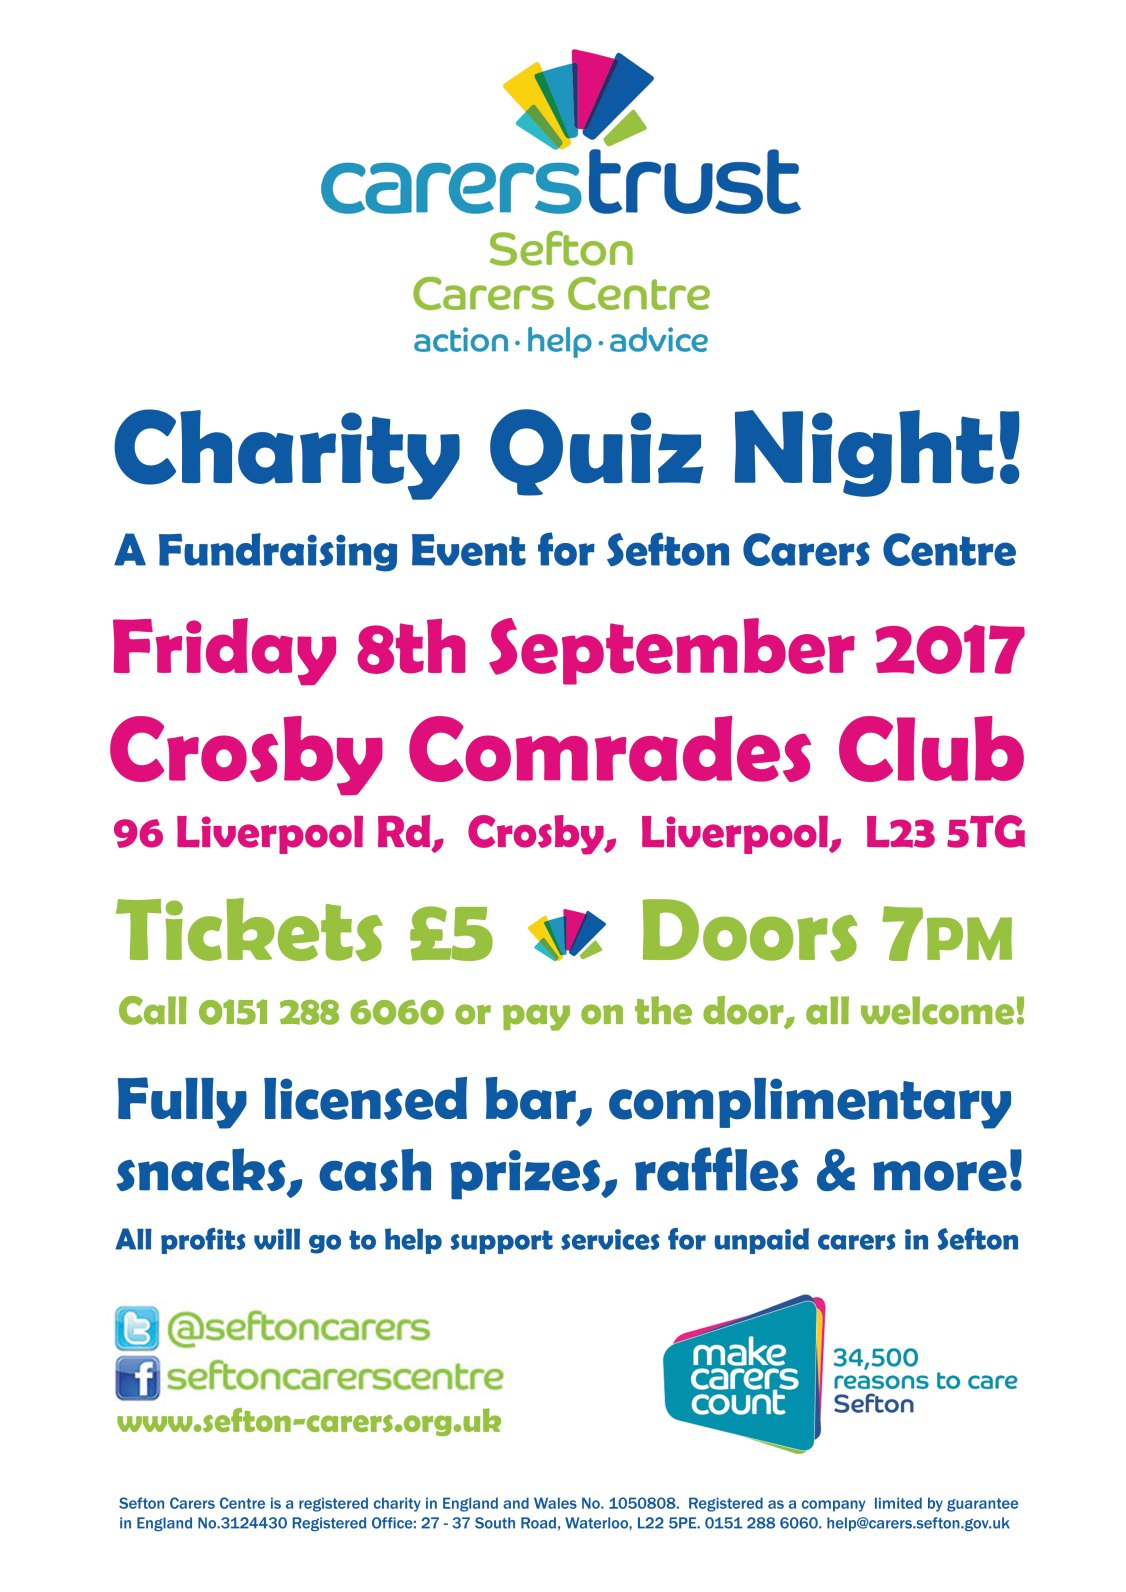 Charity-Quiz-Night.jpg